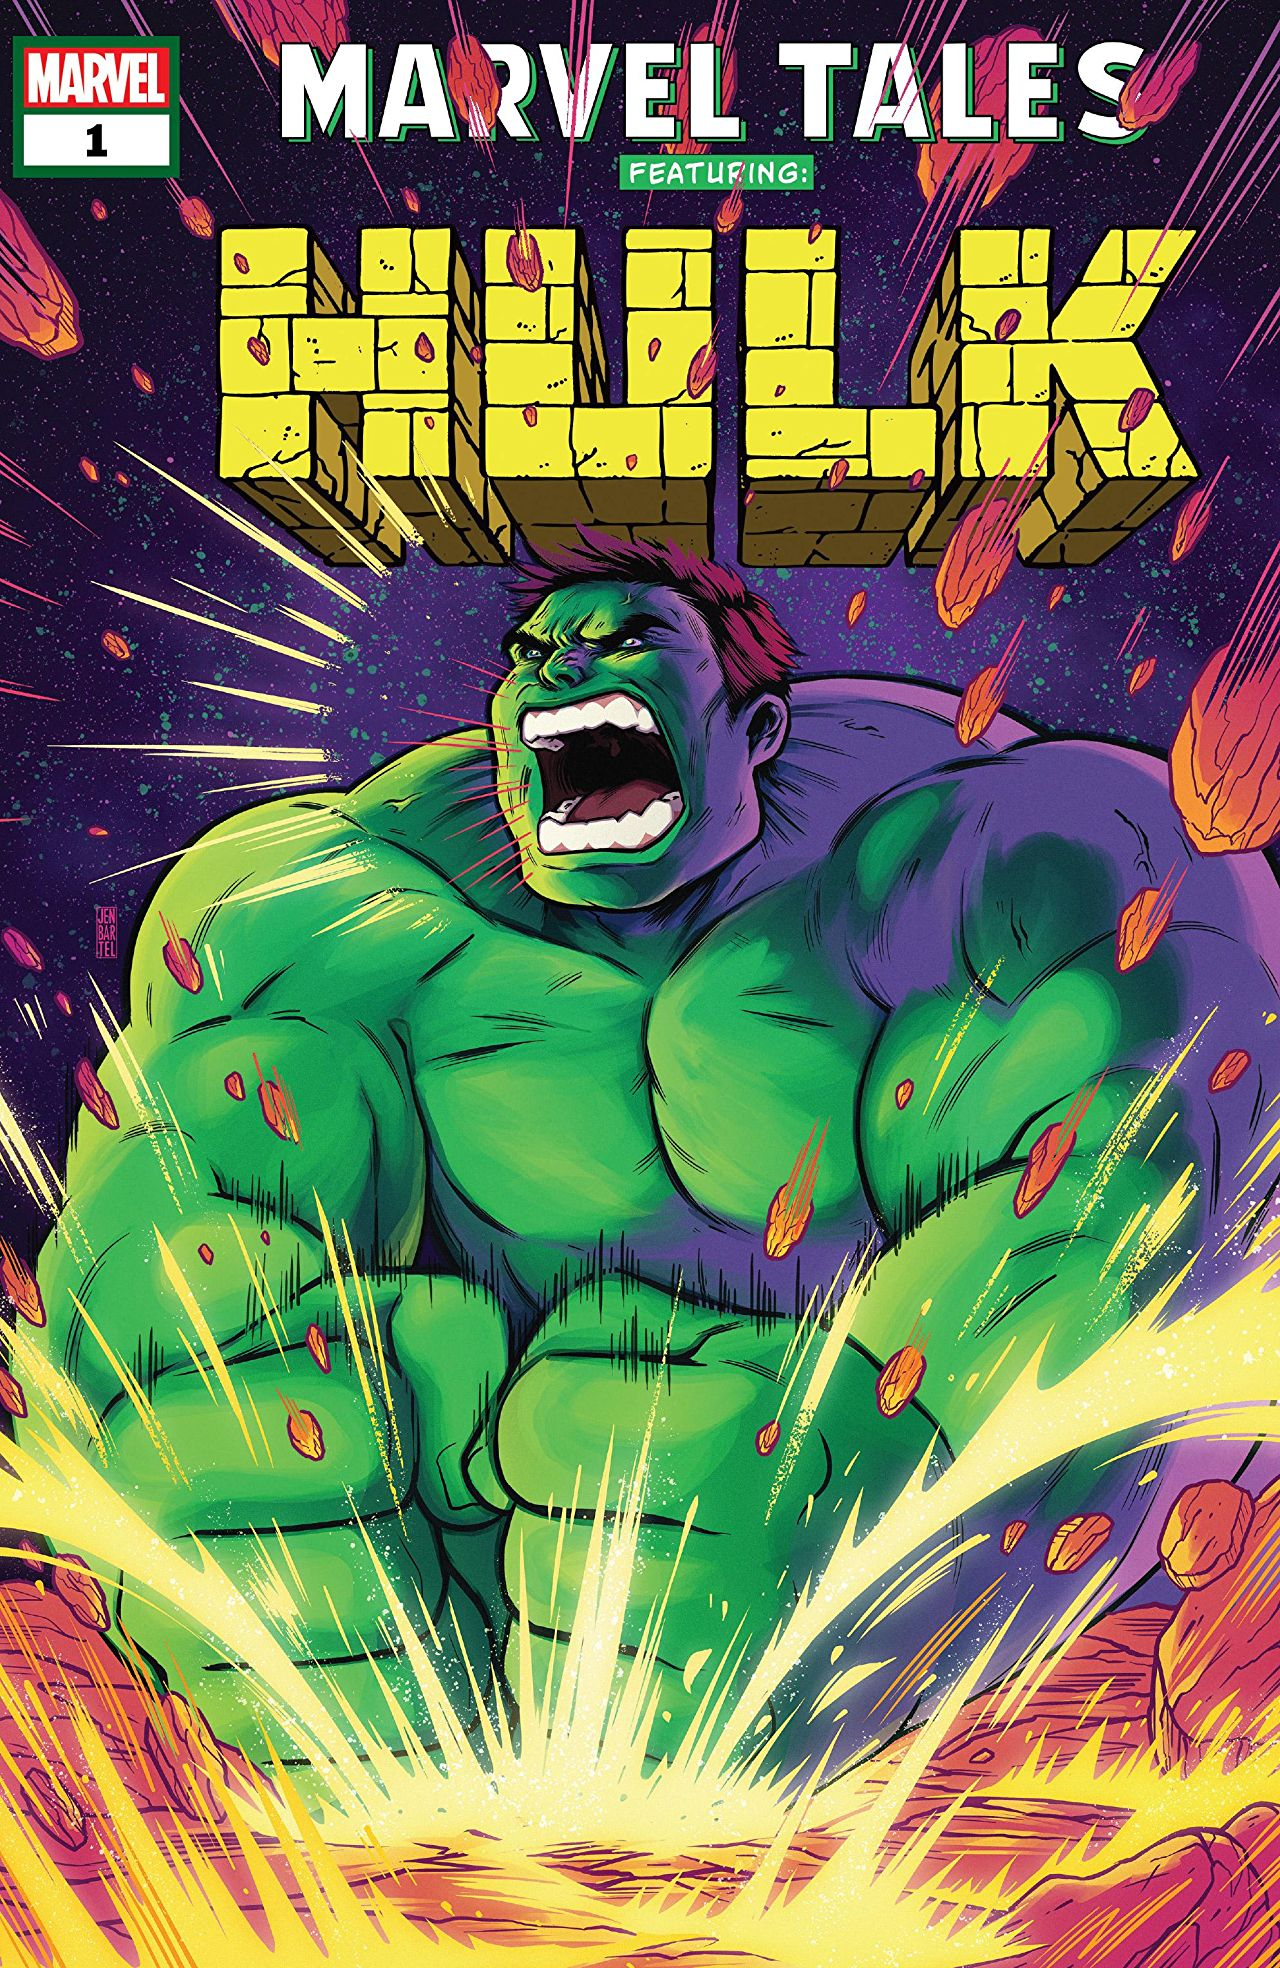 Marvel Tales: Hulk Vol 1 1